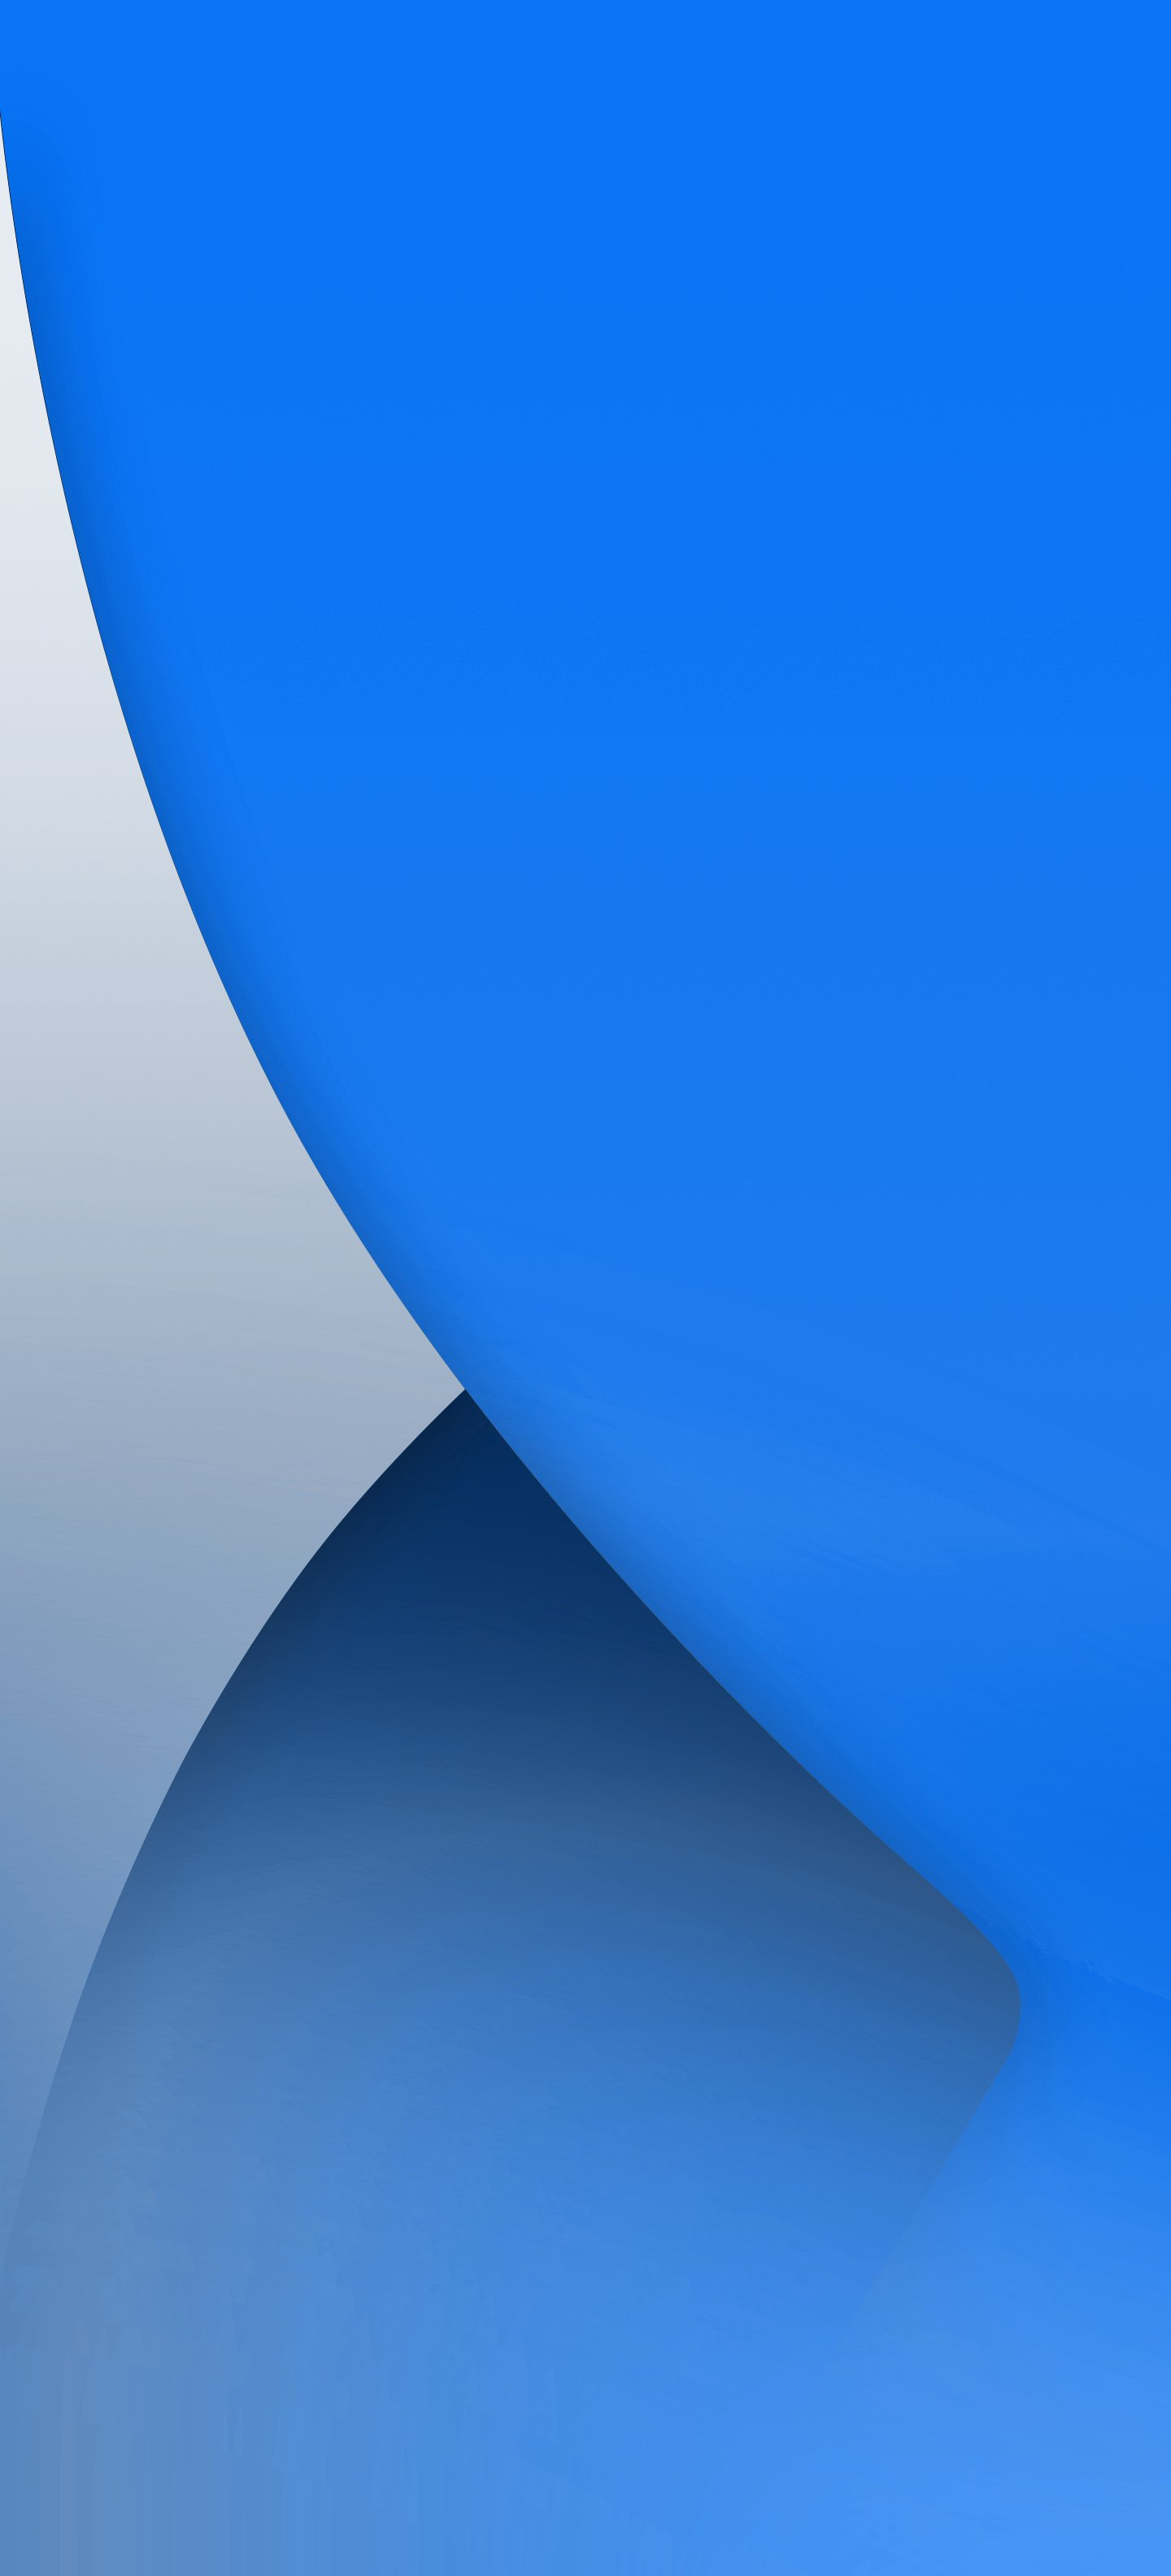 Download these blue wallpapers for iPhone iPad and Mac 1440x3168